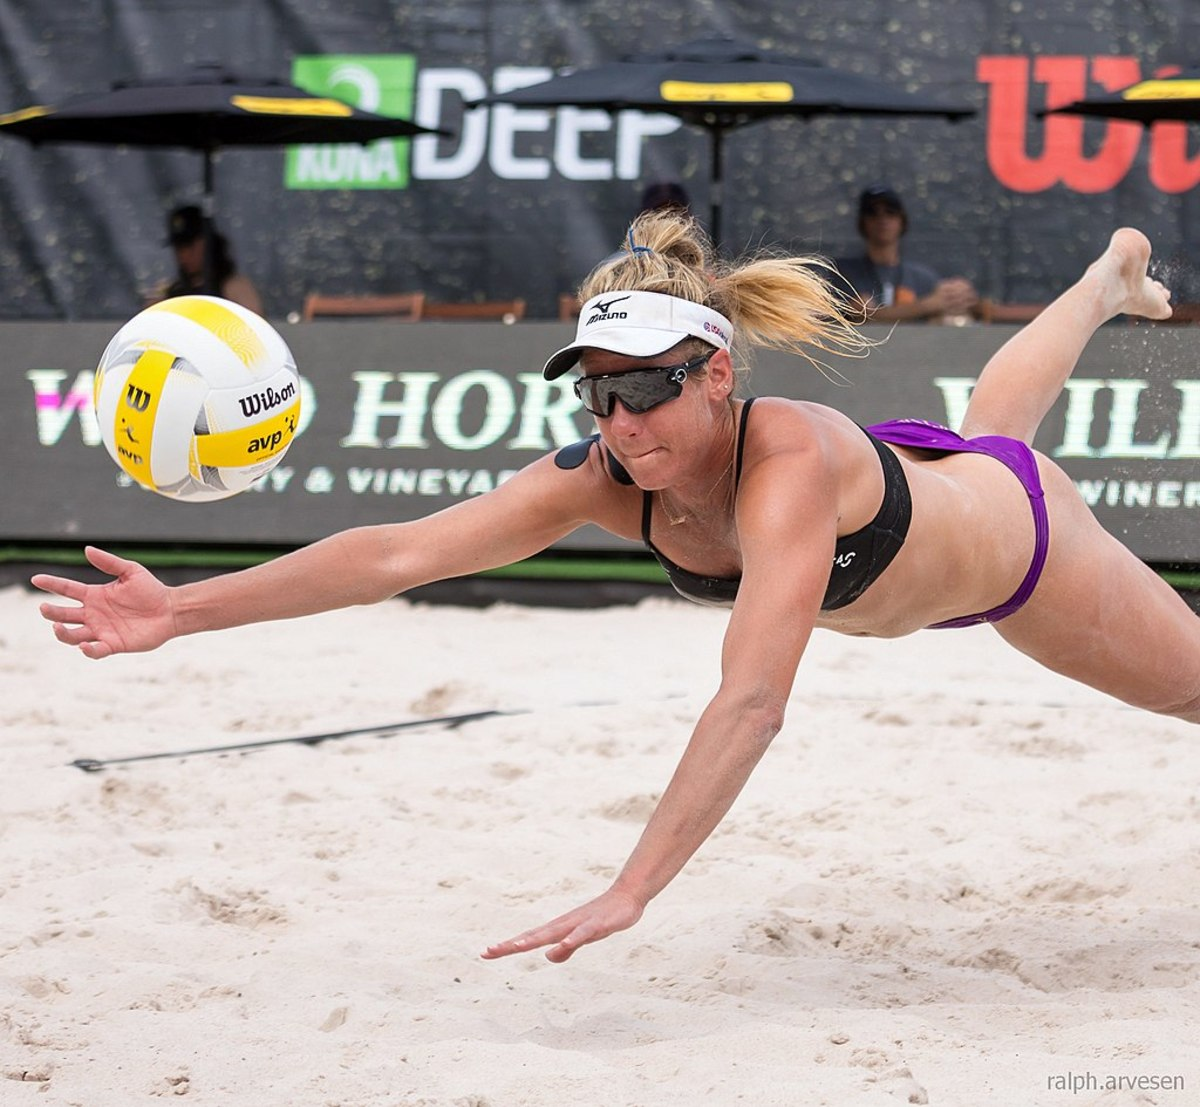 April Ross diving for a ball at the AVP Austin Open professional beach volleyball tournament in Austin, Texas on May 19th, 2017.